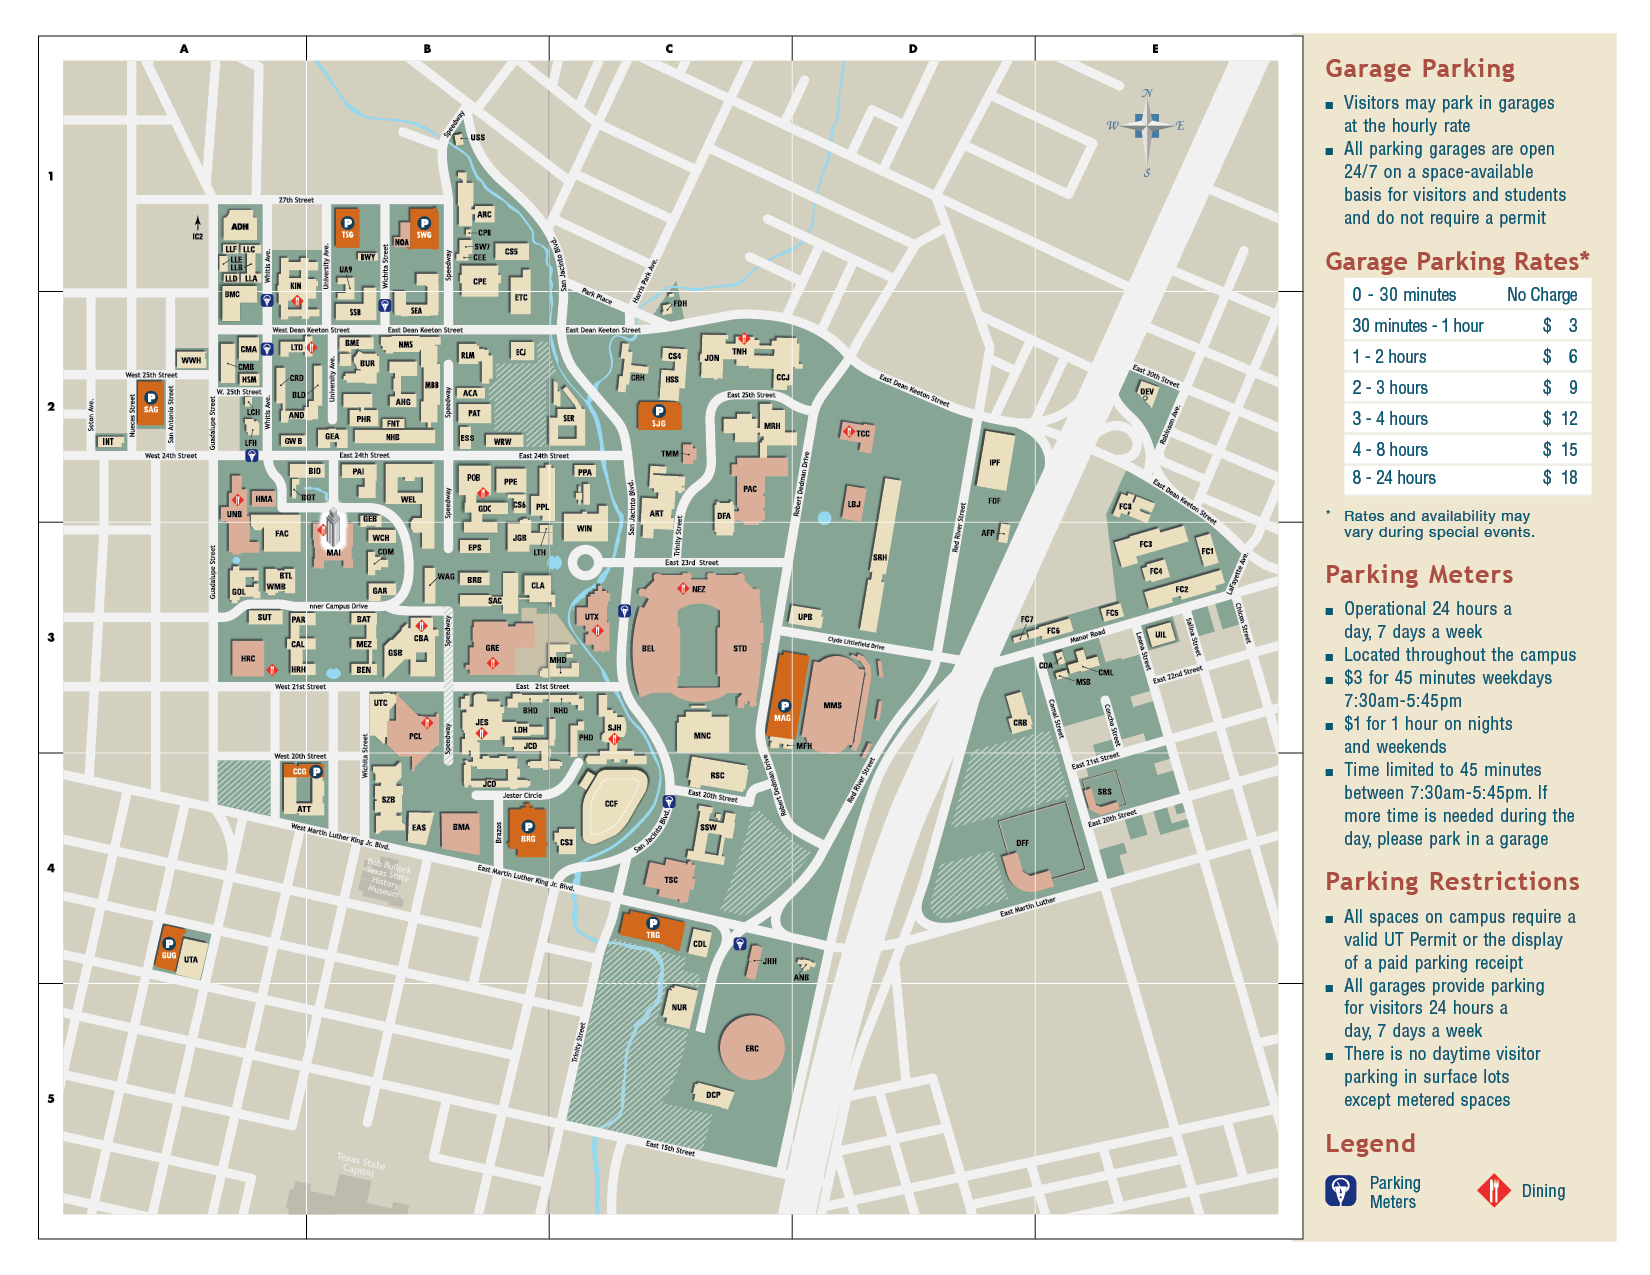 Union Pacific Illinois Map on uiuc parking lot map, uiuc main library map, uiuc quad, uiuc self, uiuc housing map,